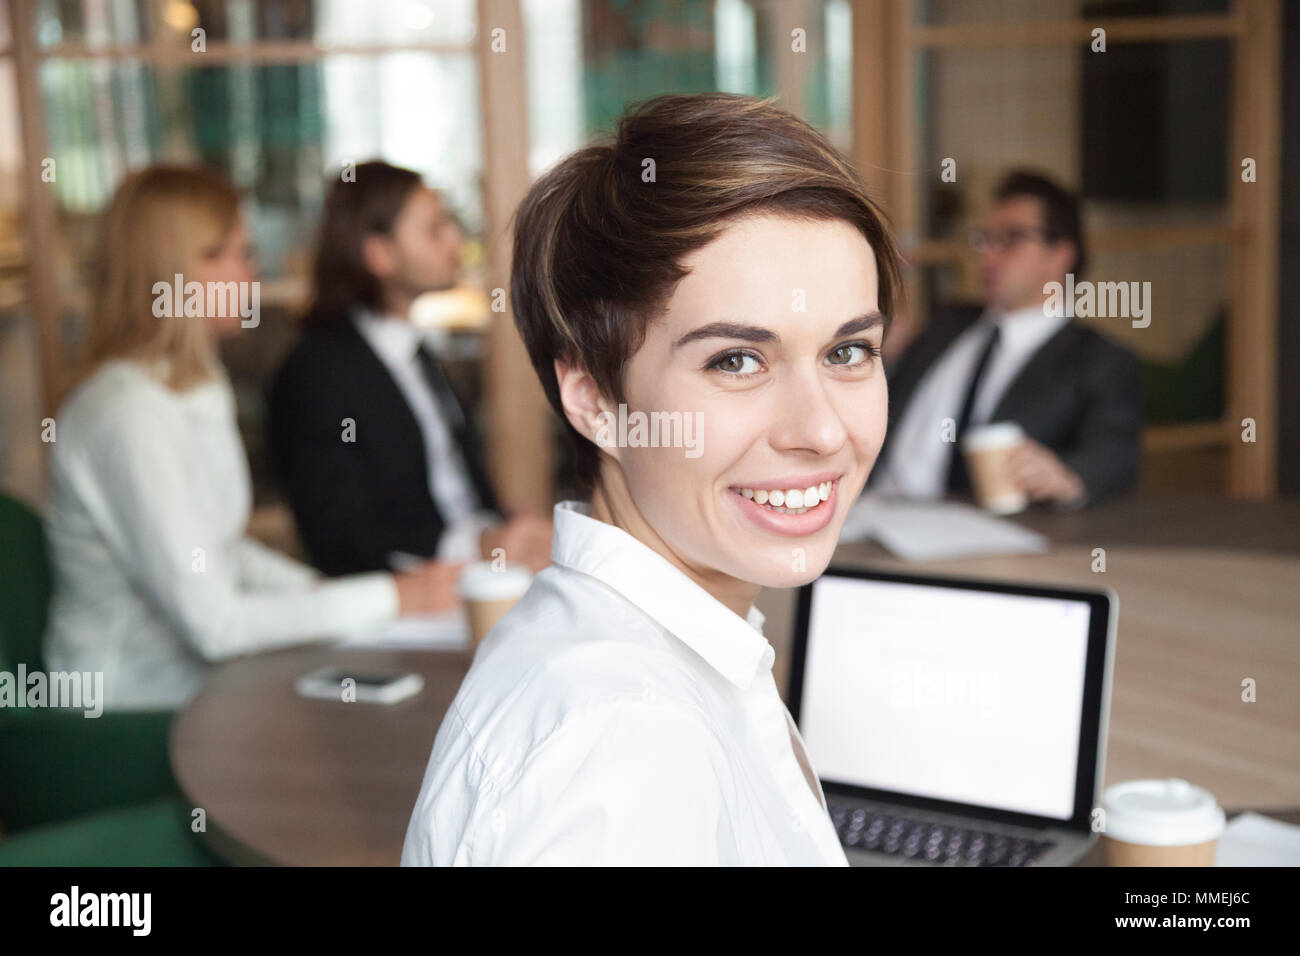 Smiling businesswoman professional interpreter looking at camera - Stock Image